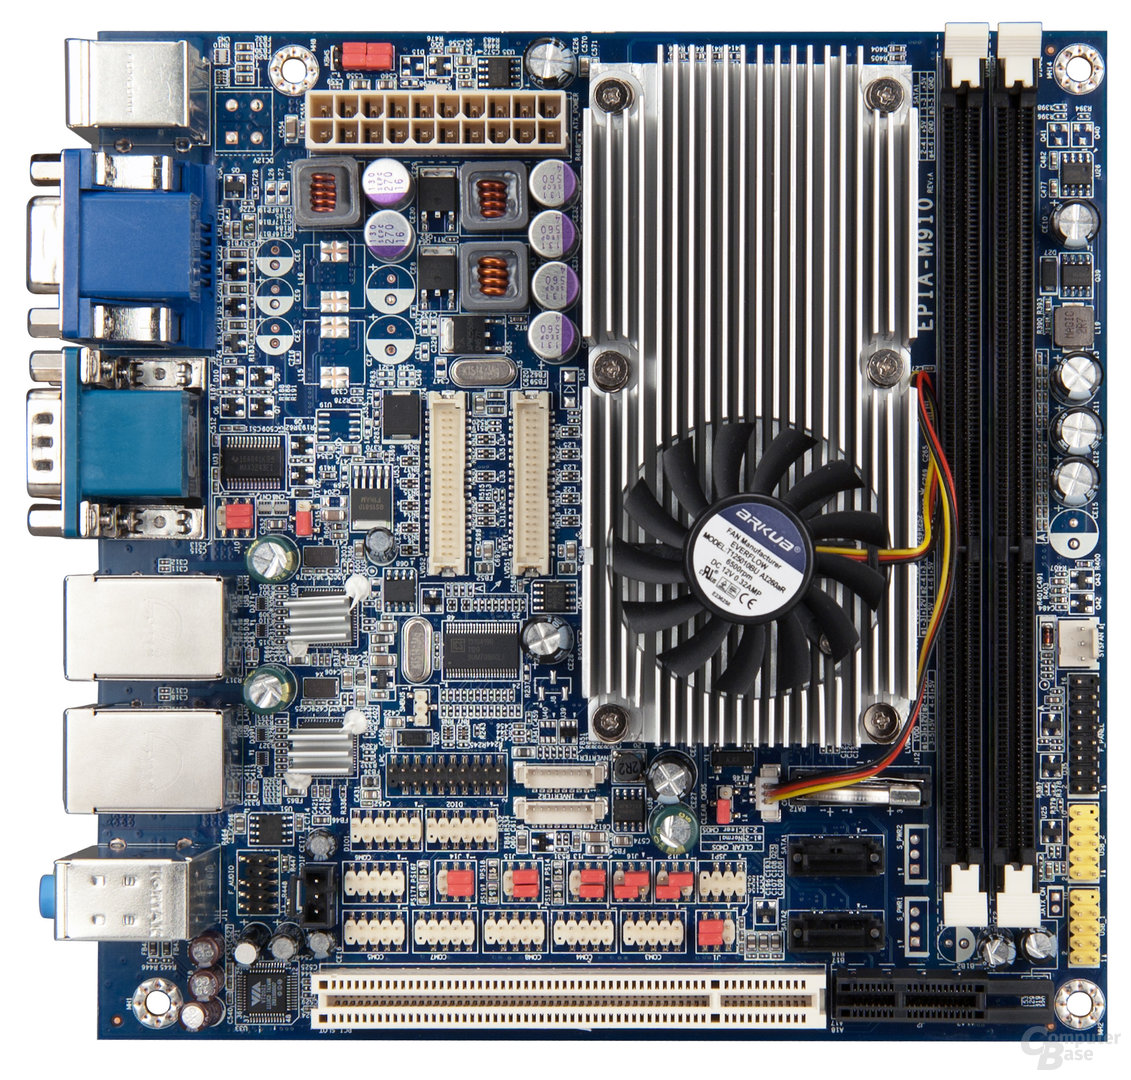 VIA EPIA-M910 Mini-ITX-Board mit Quad-Core-CPU